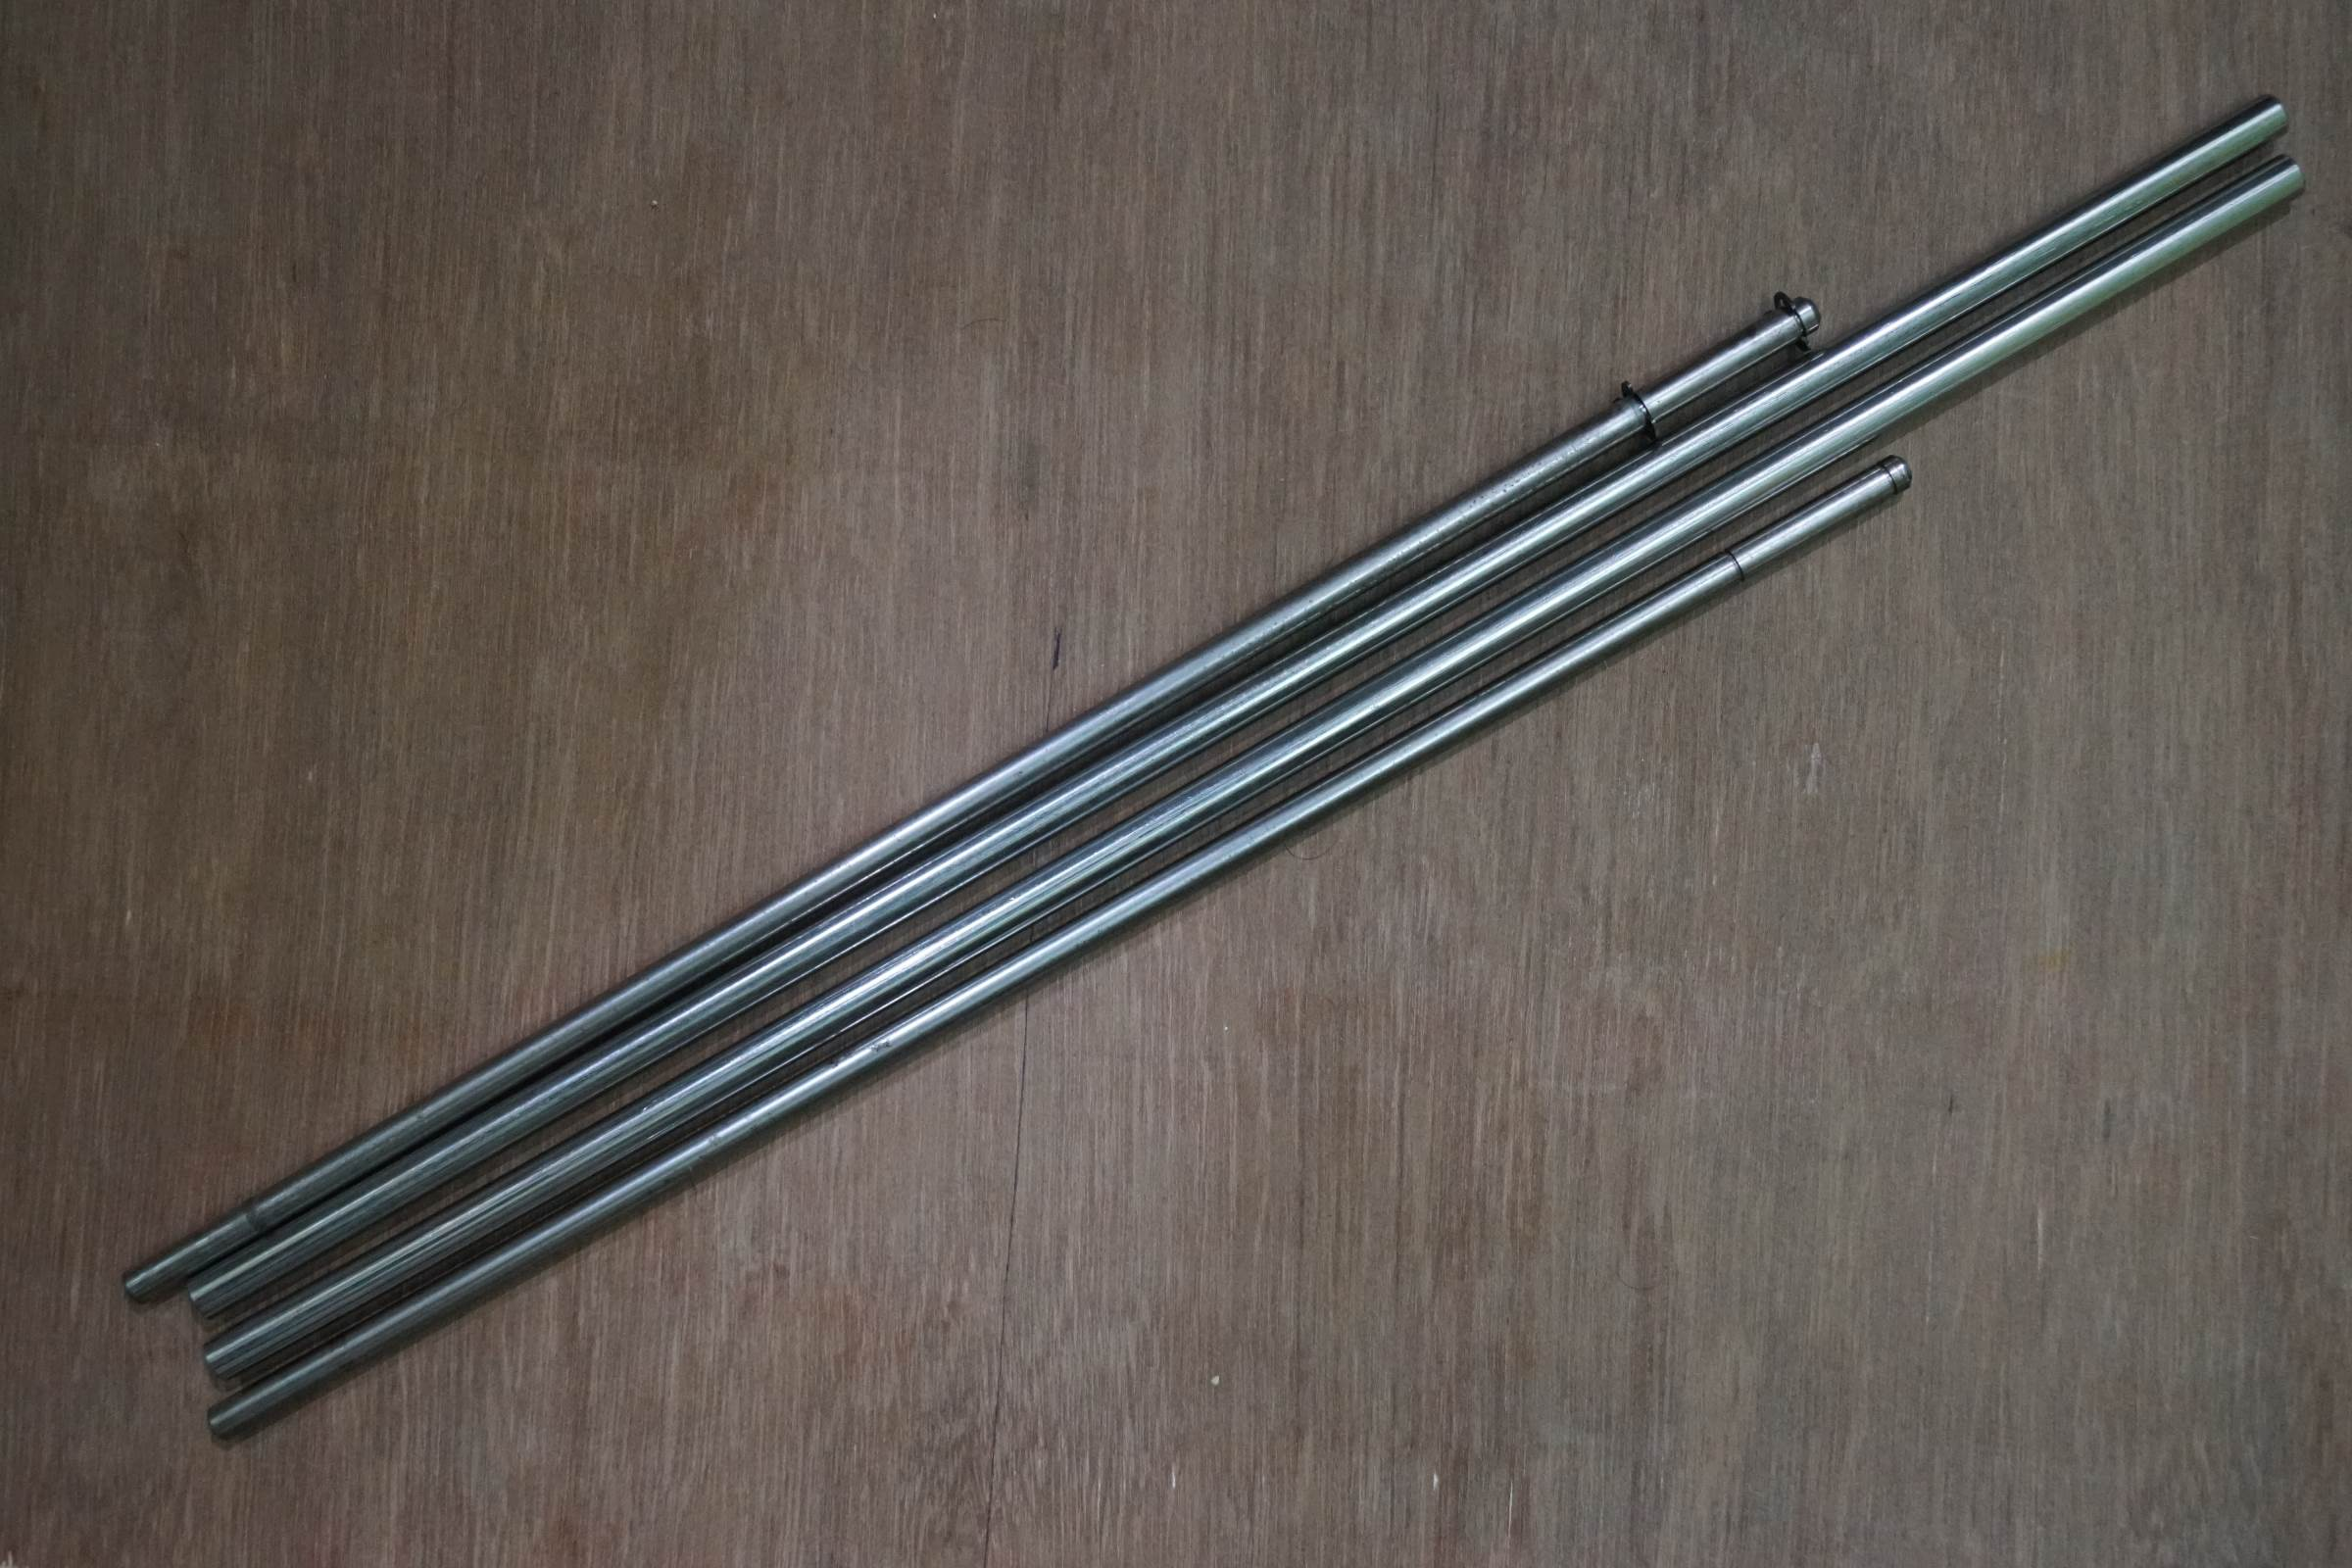 8mm and 10mm Stainless Steel SS Smooth Rods